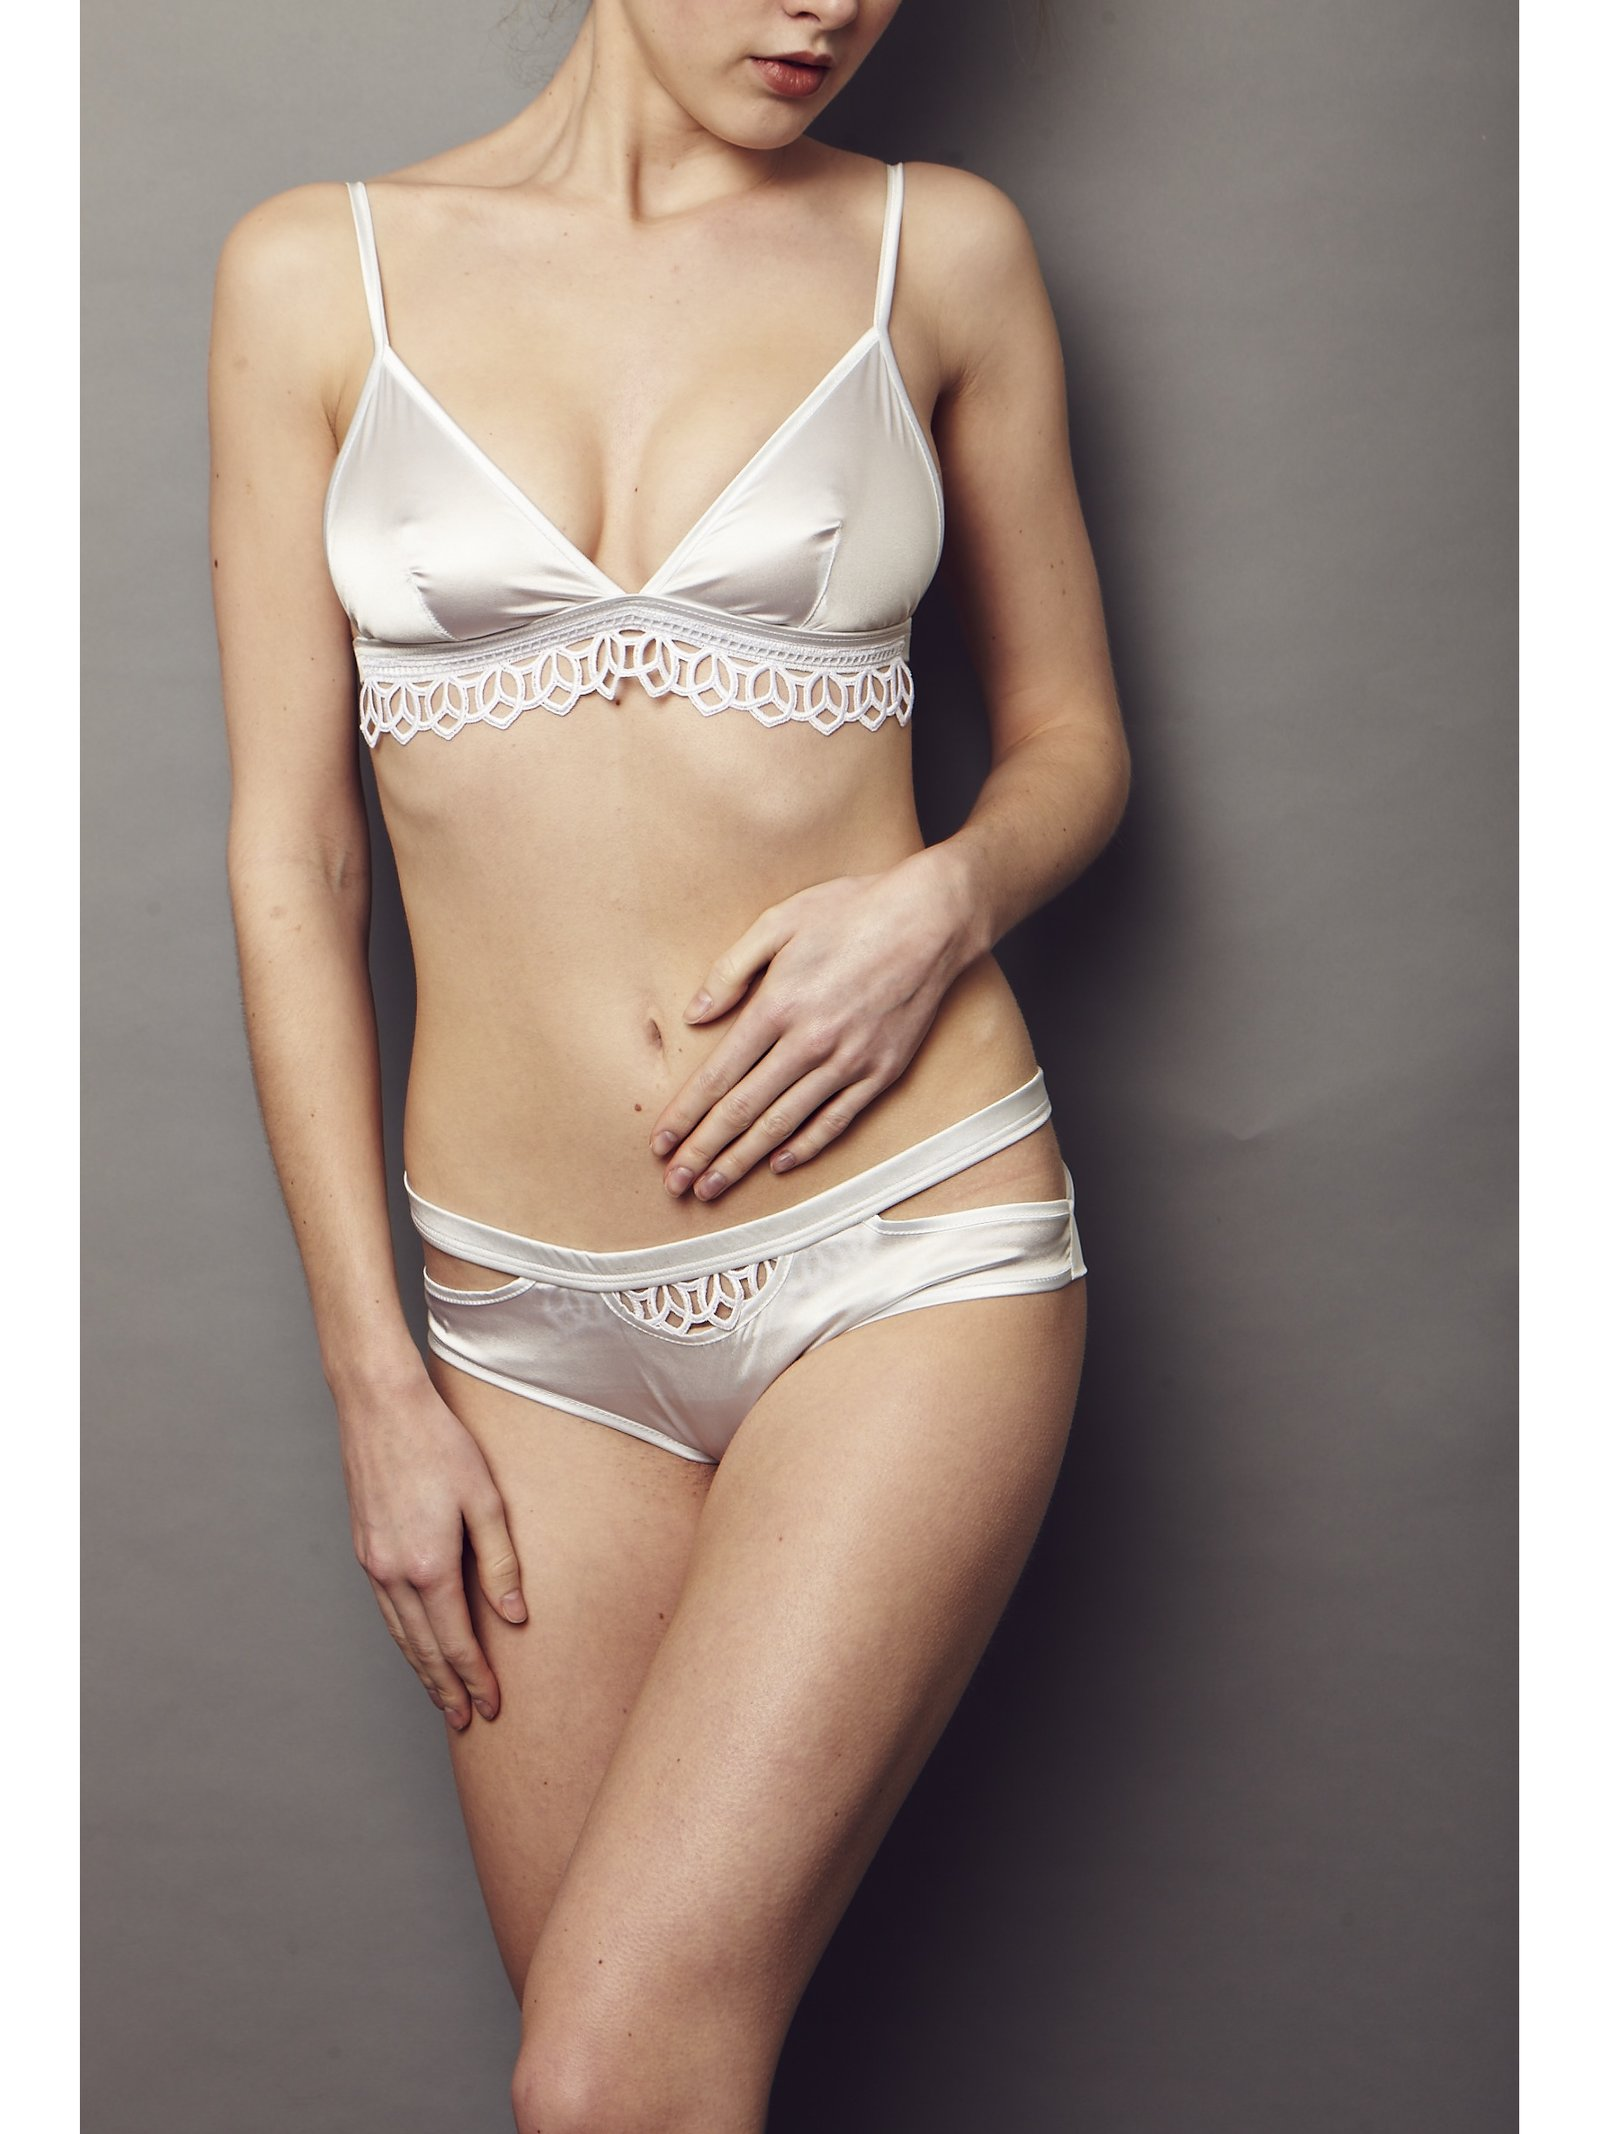 NightProwl Elysium Lace Bra Triangle Bridal